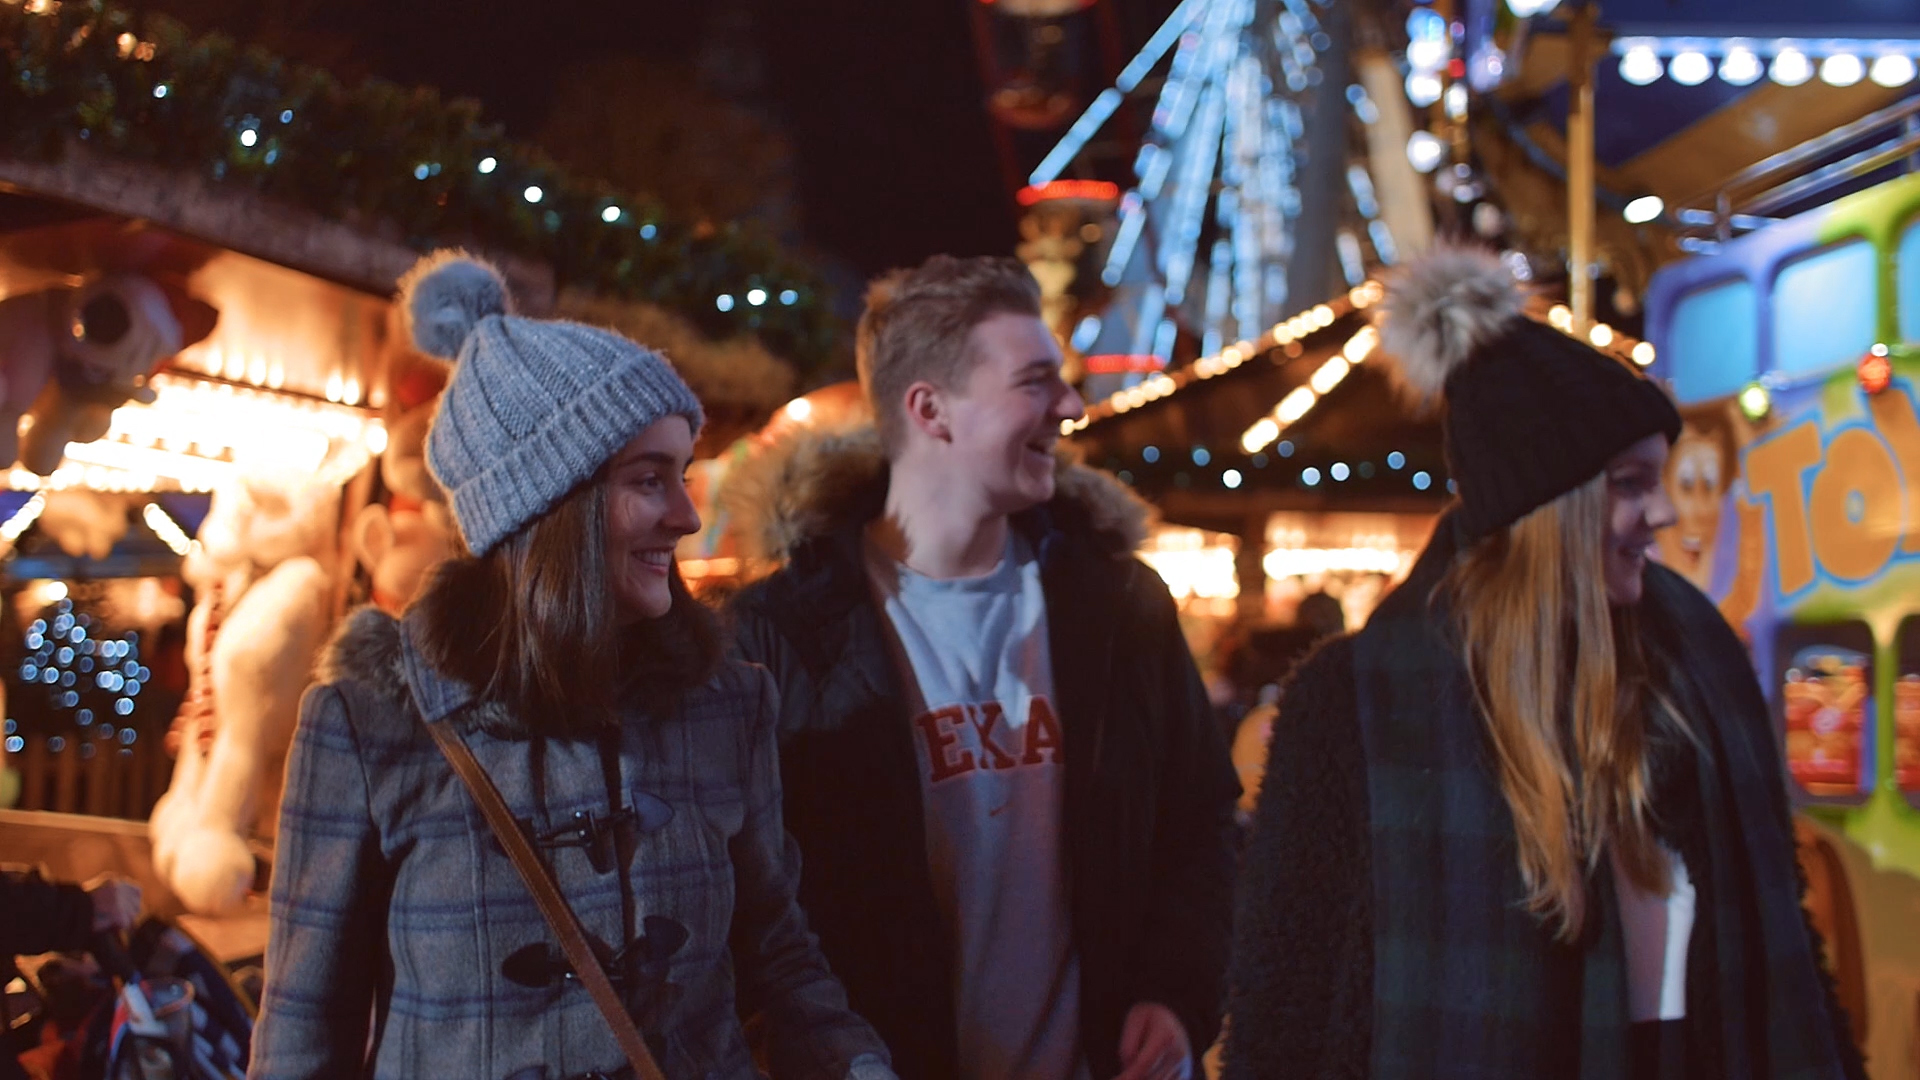 Cardiff Met Christmas promo - Video still 2